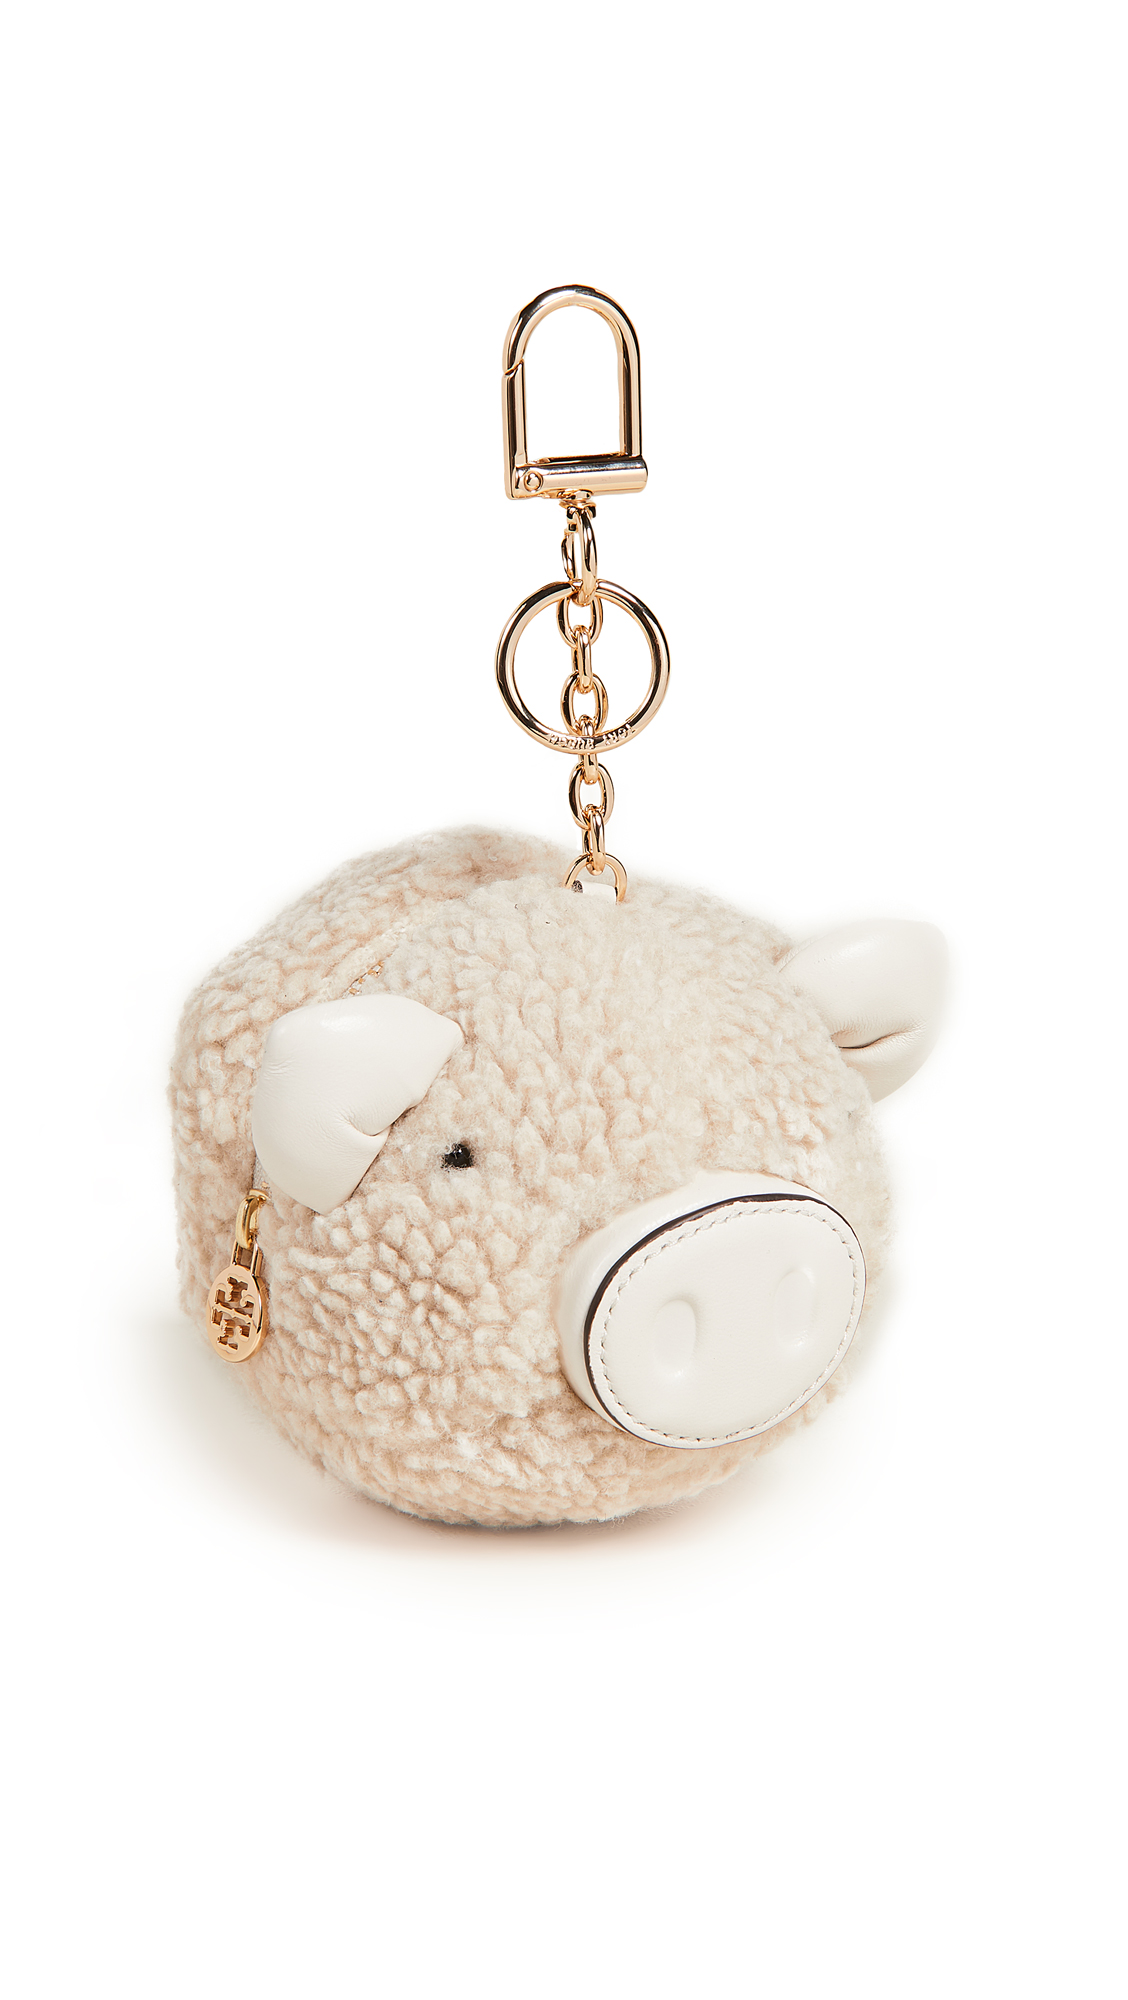 Tory Burch Pig Charm Coin Purse